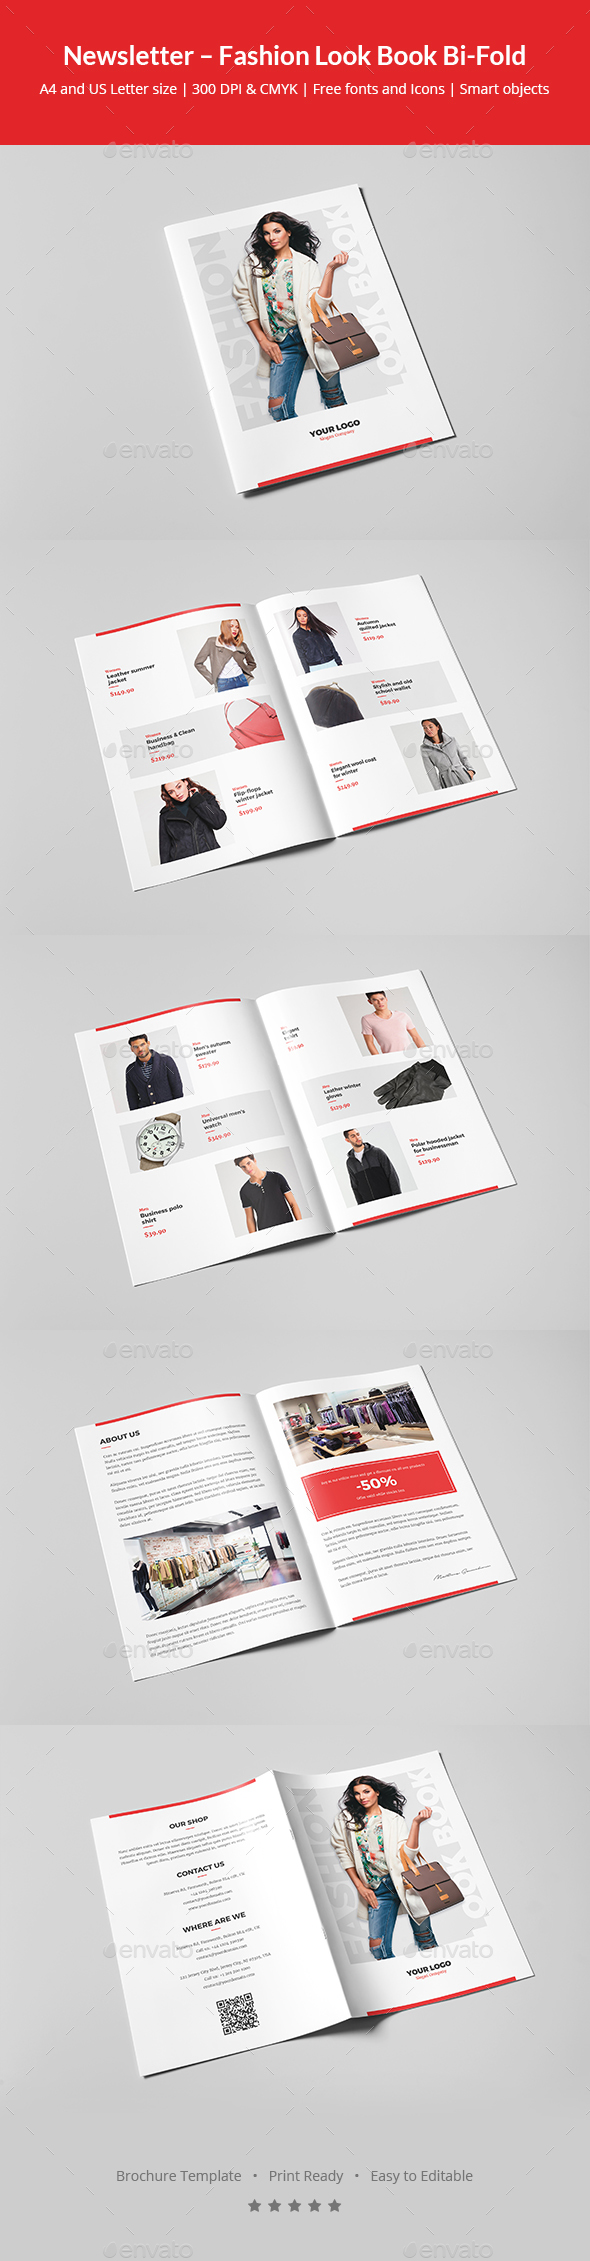 GraphicRiver Newsletter Fashion Look Book Bi-Fold 20949805